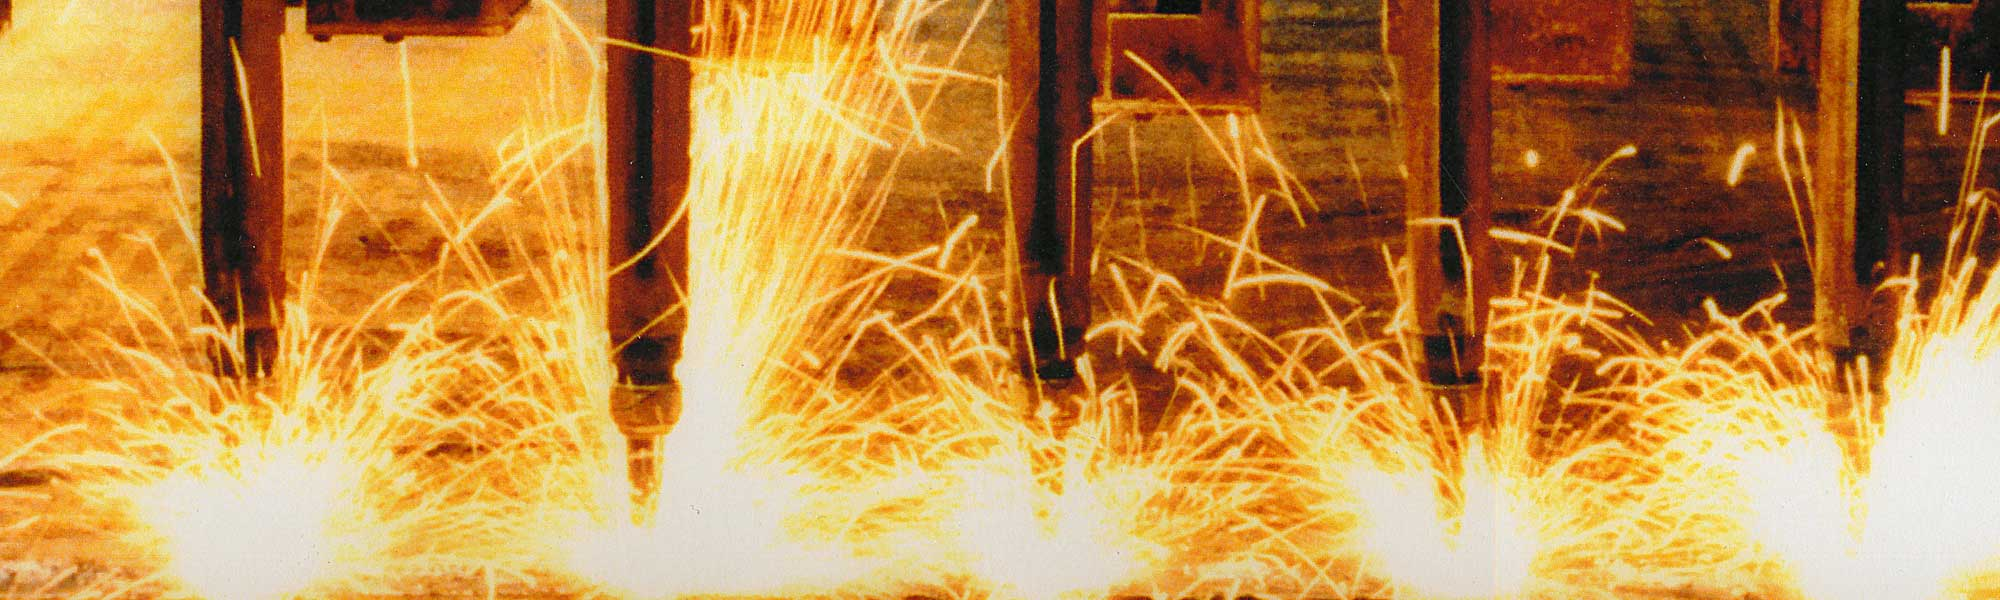 sparks flying at a steel fabrication shop